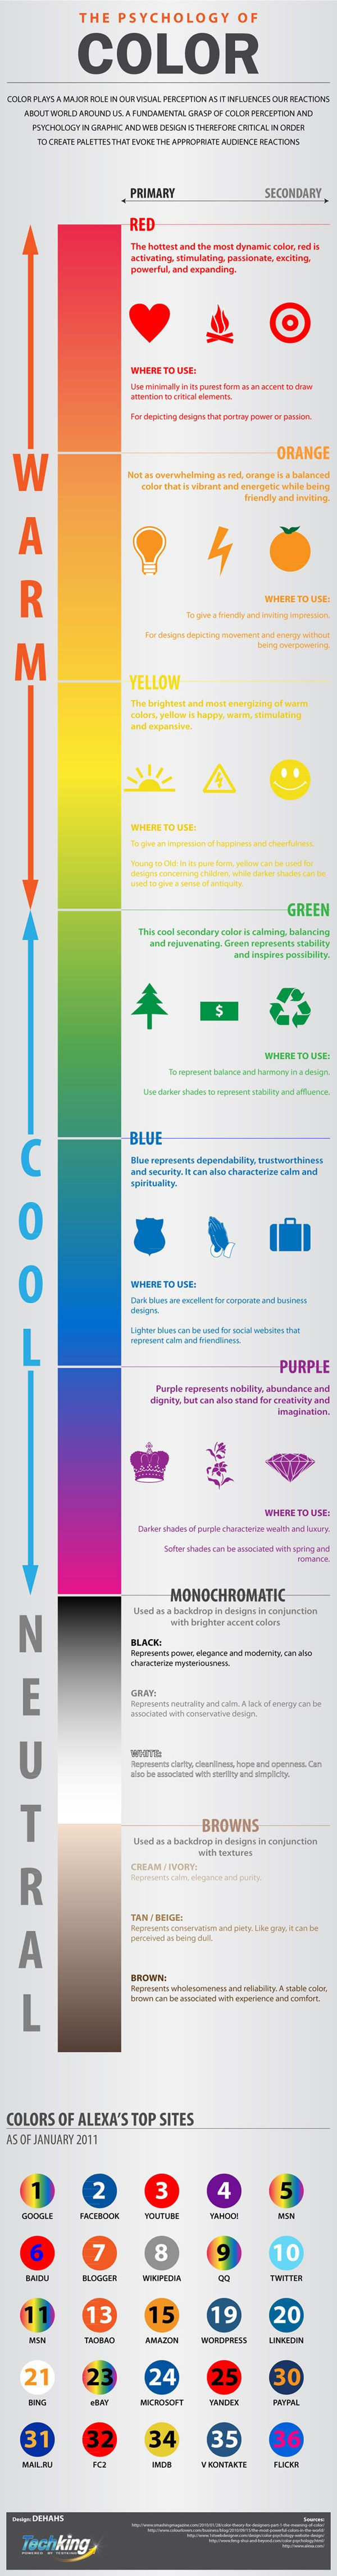 The psychology of color for web designers [infographic]